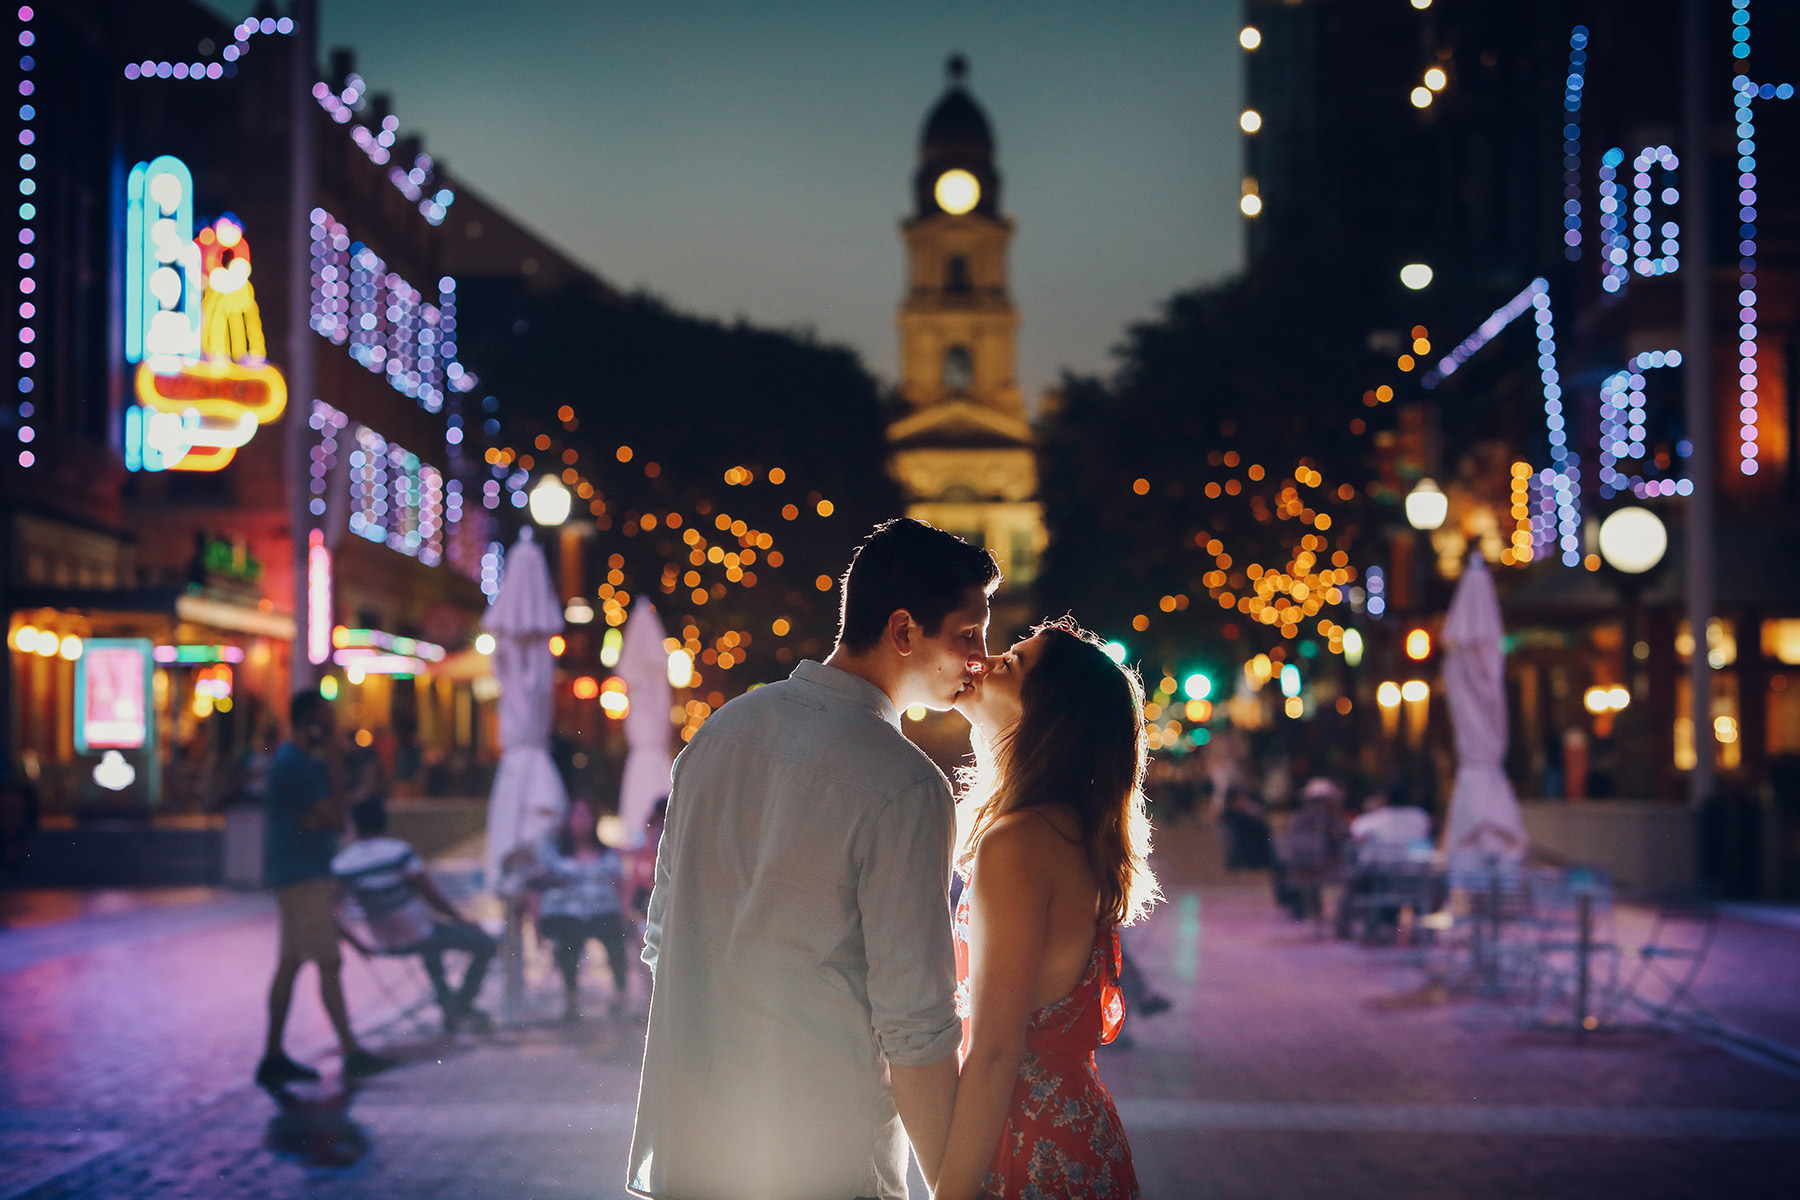 Vick-Photography-Engagement-Session-Texas-Night-Lights-Carnival.jpg